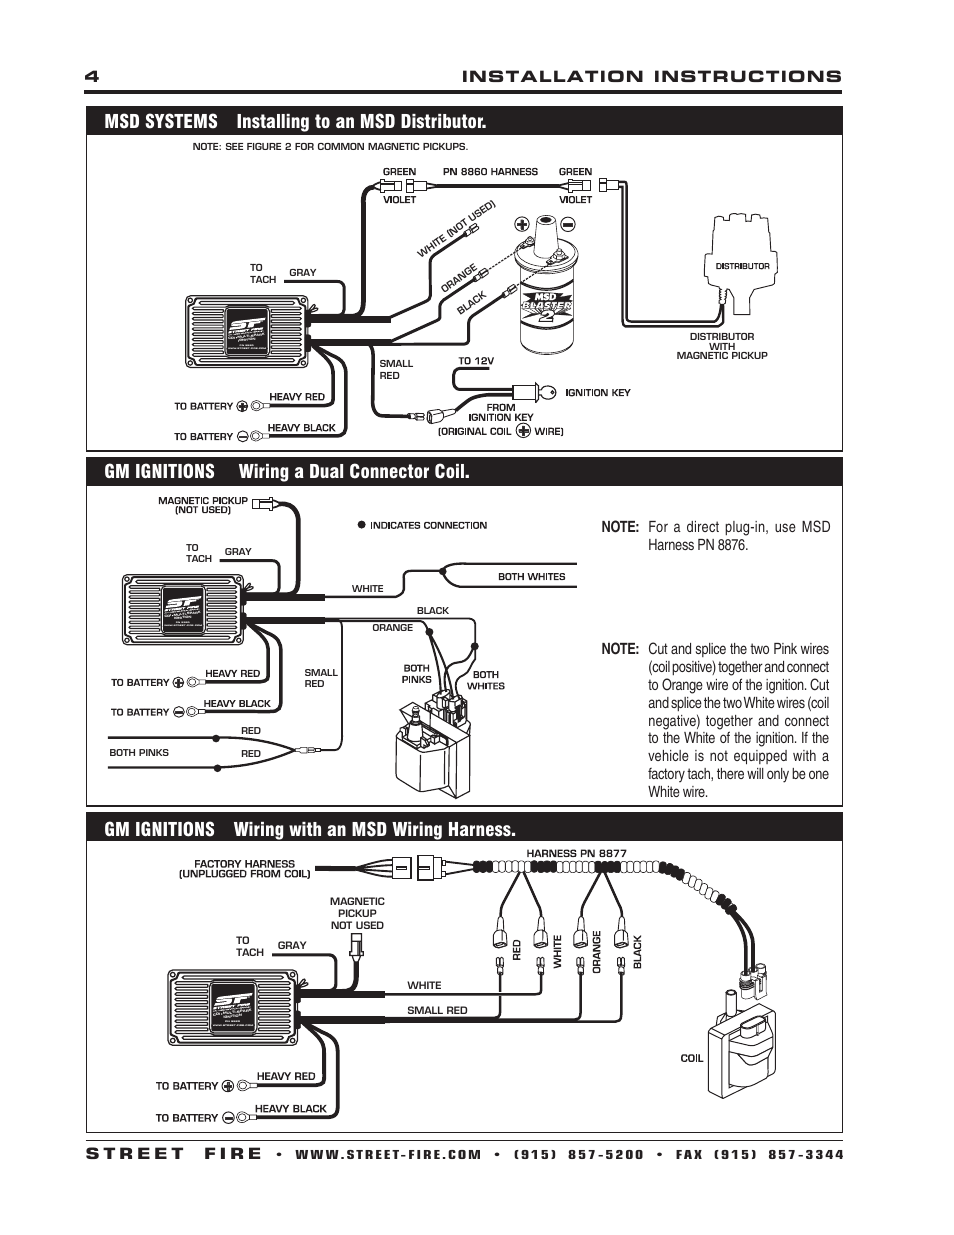 Msd 5520 Ignition Wiring Diagram Auto Electrical 1983 Ford F 150 300